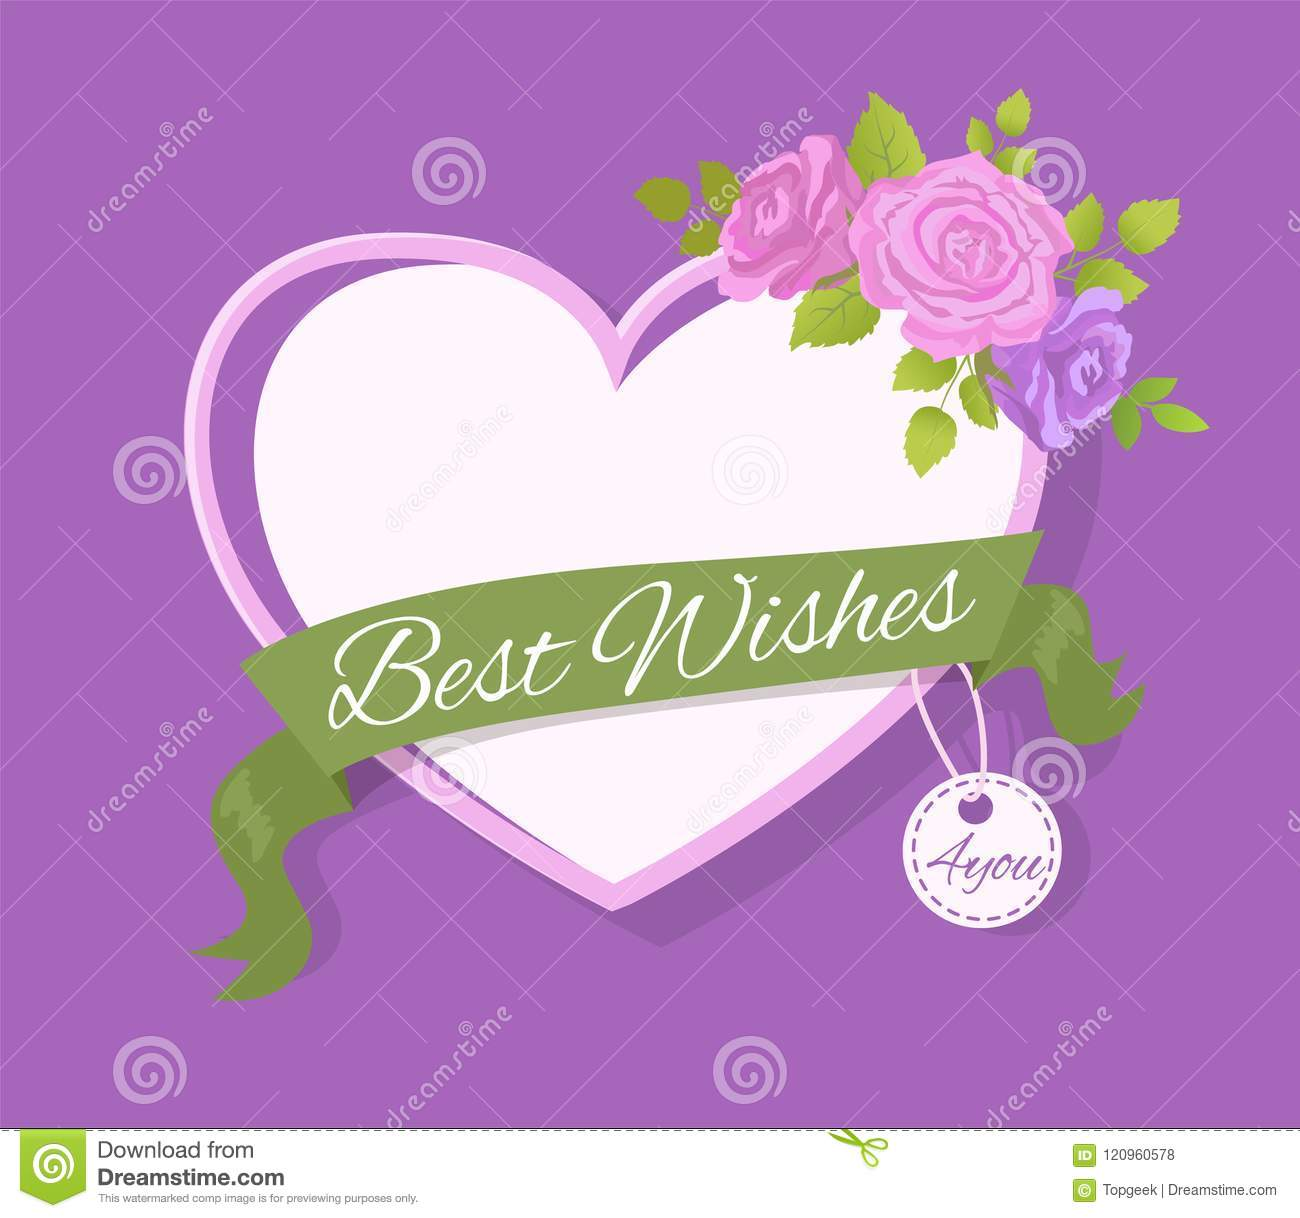 Best wishes 4 you greeting card design with heart stock vector best wishes 4 you greeting card design with heart m4hsunfo